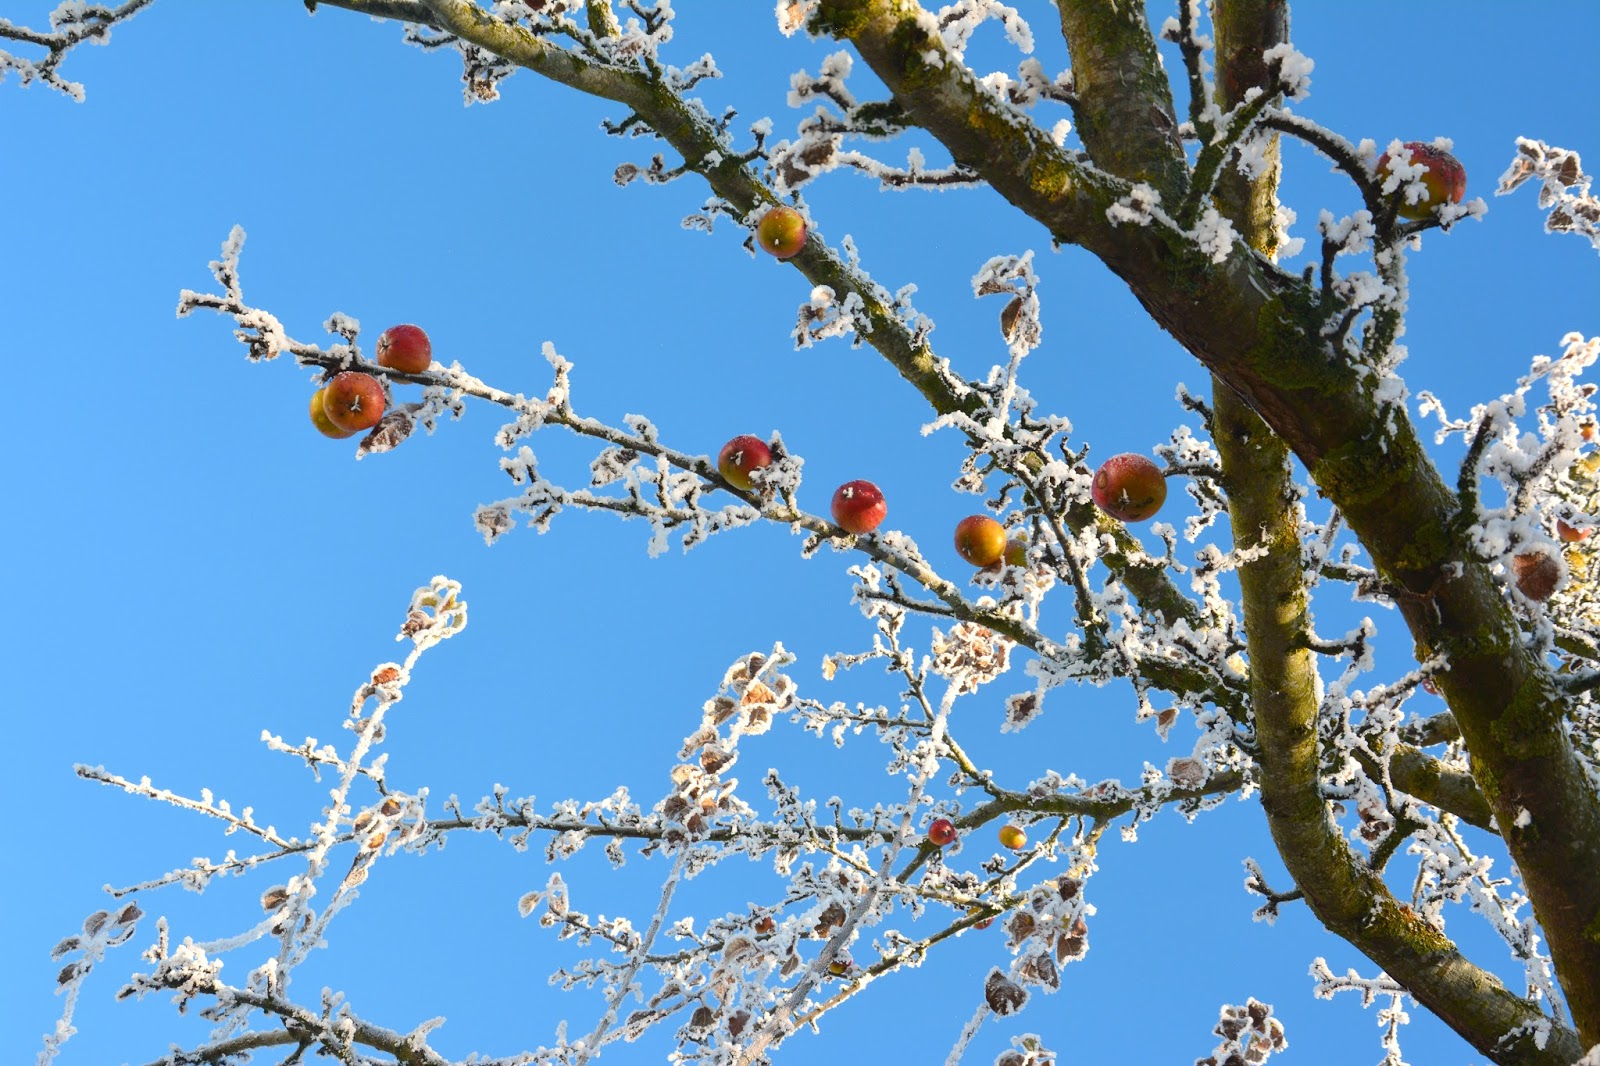 Tree Branches with Apples and Frost in front of a blue sky